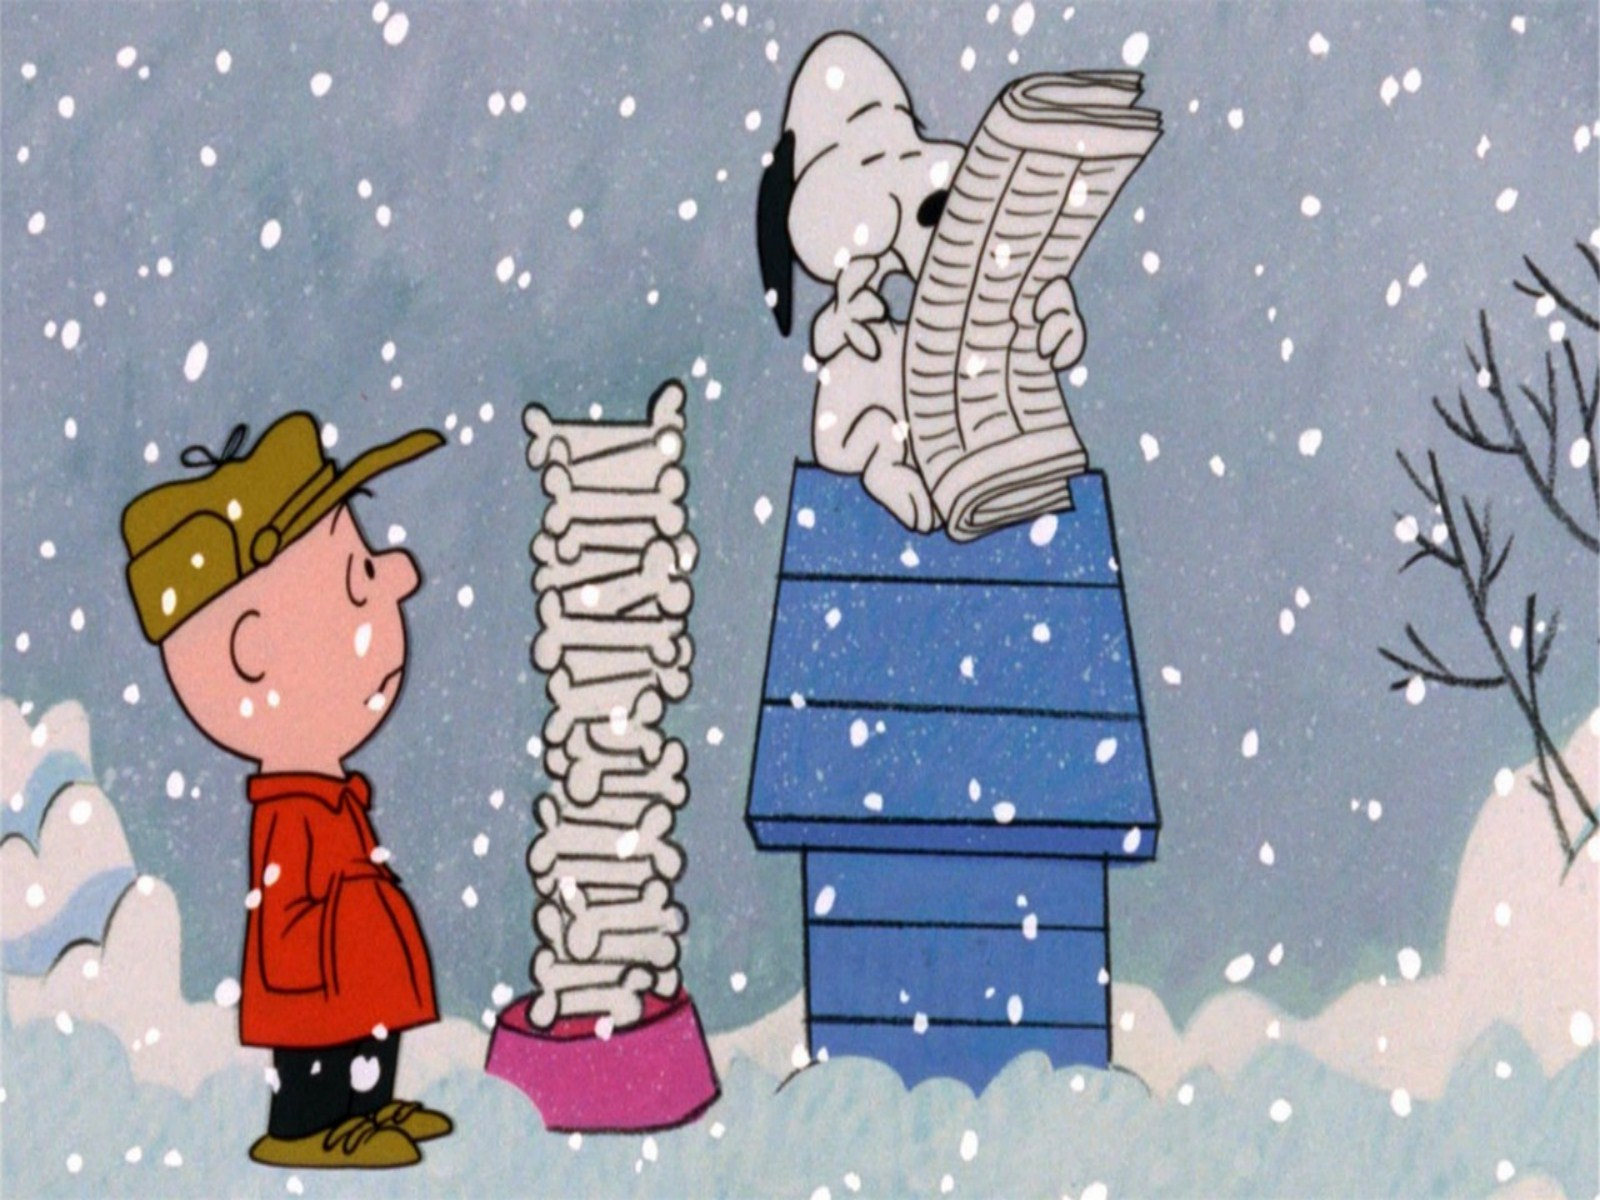 Free Fall Widescreen Wallpaper Charlie Brown Christmas Wallpaper Free Download